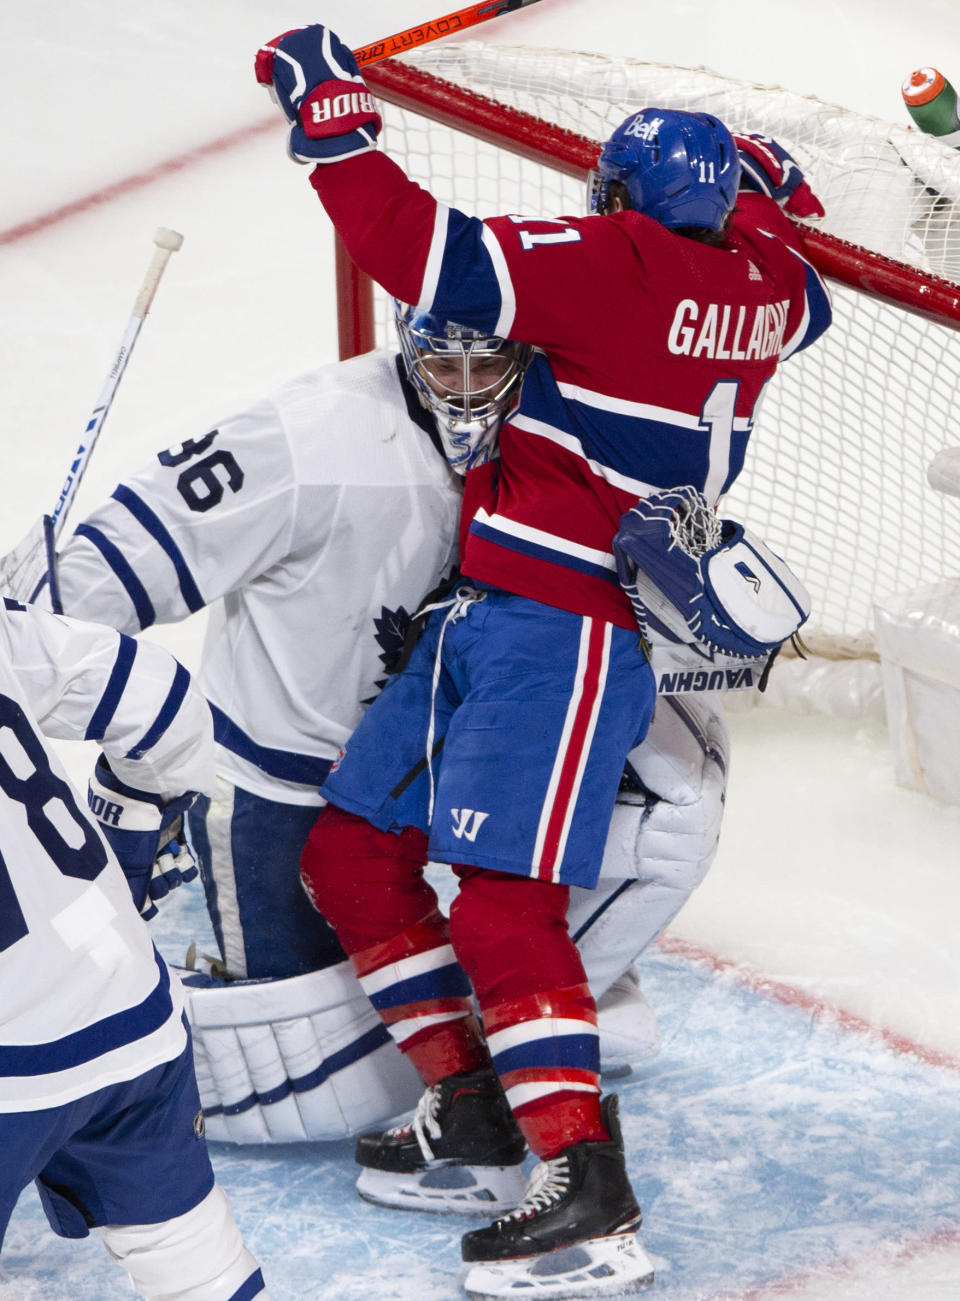 Montreal Canadiens right wing Brendan Gallagher (11) becomes entangled with Toronto Maple Leafs goaltender Jack Campbell (36) during the second period of Game 6 of an NHL hockey Stanley Cup first-round playoff seres Saturday, May 29, 2021, in Montreal. (Ryan Remiorz/The Canadian Press via AP